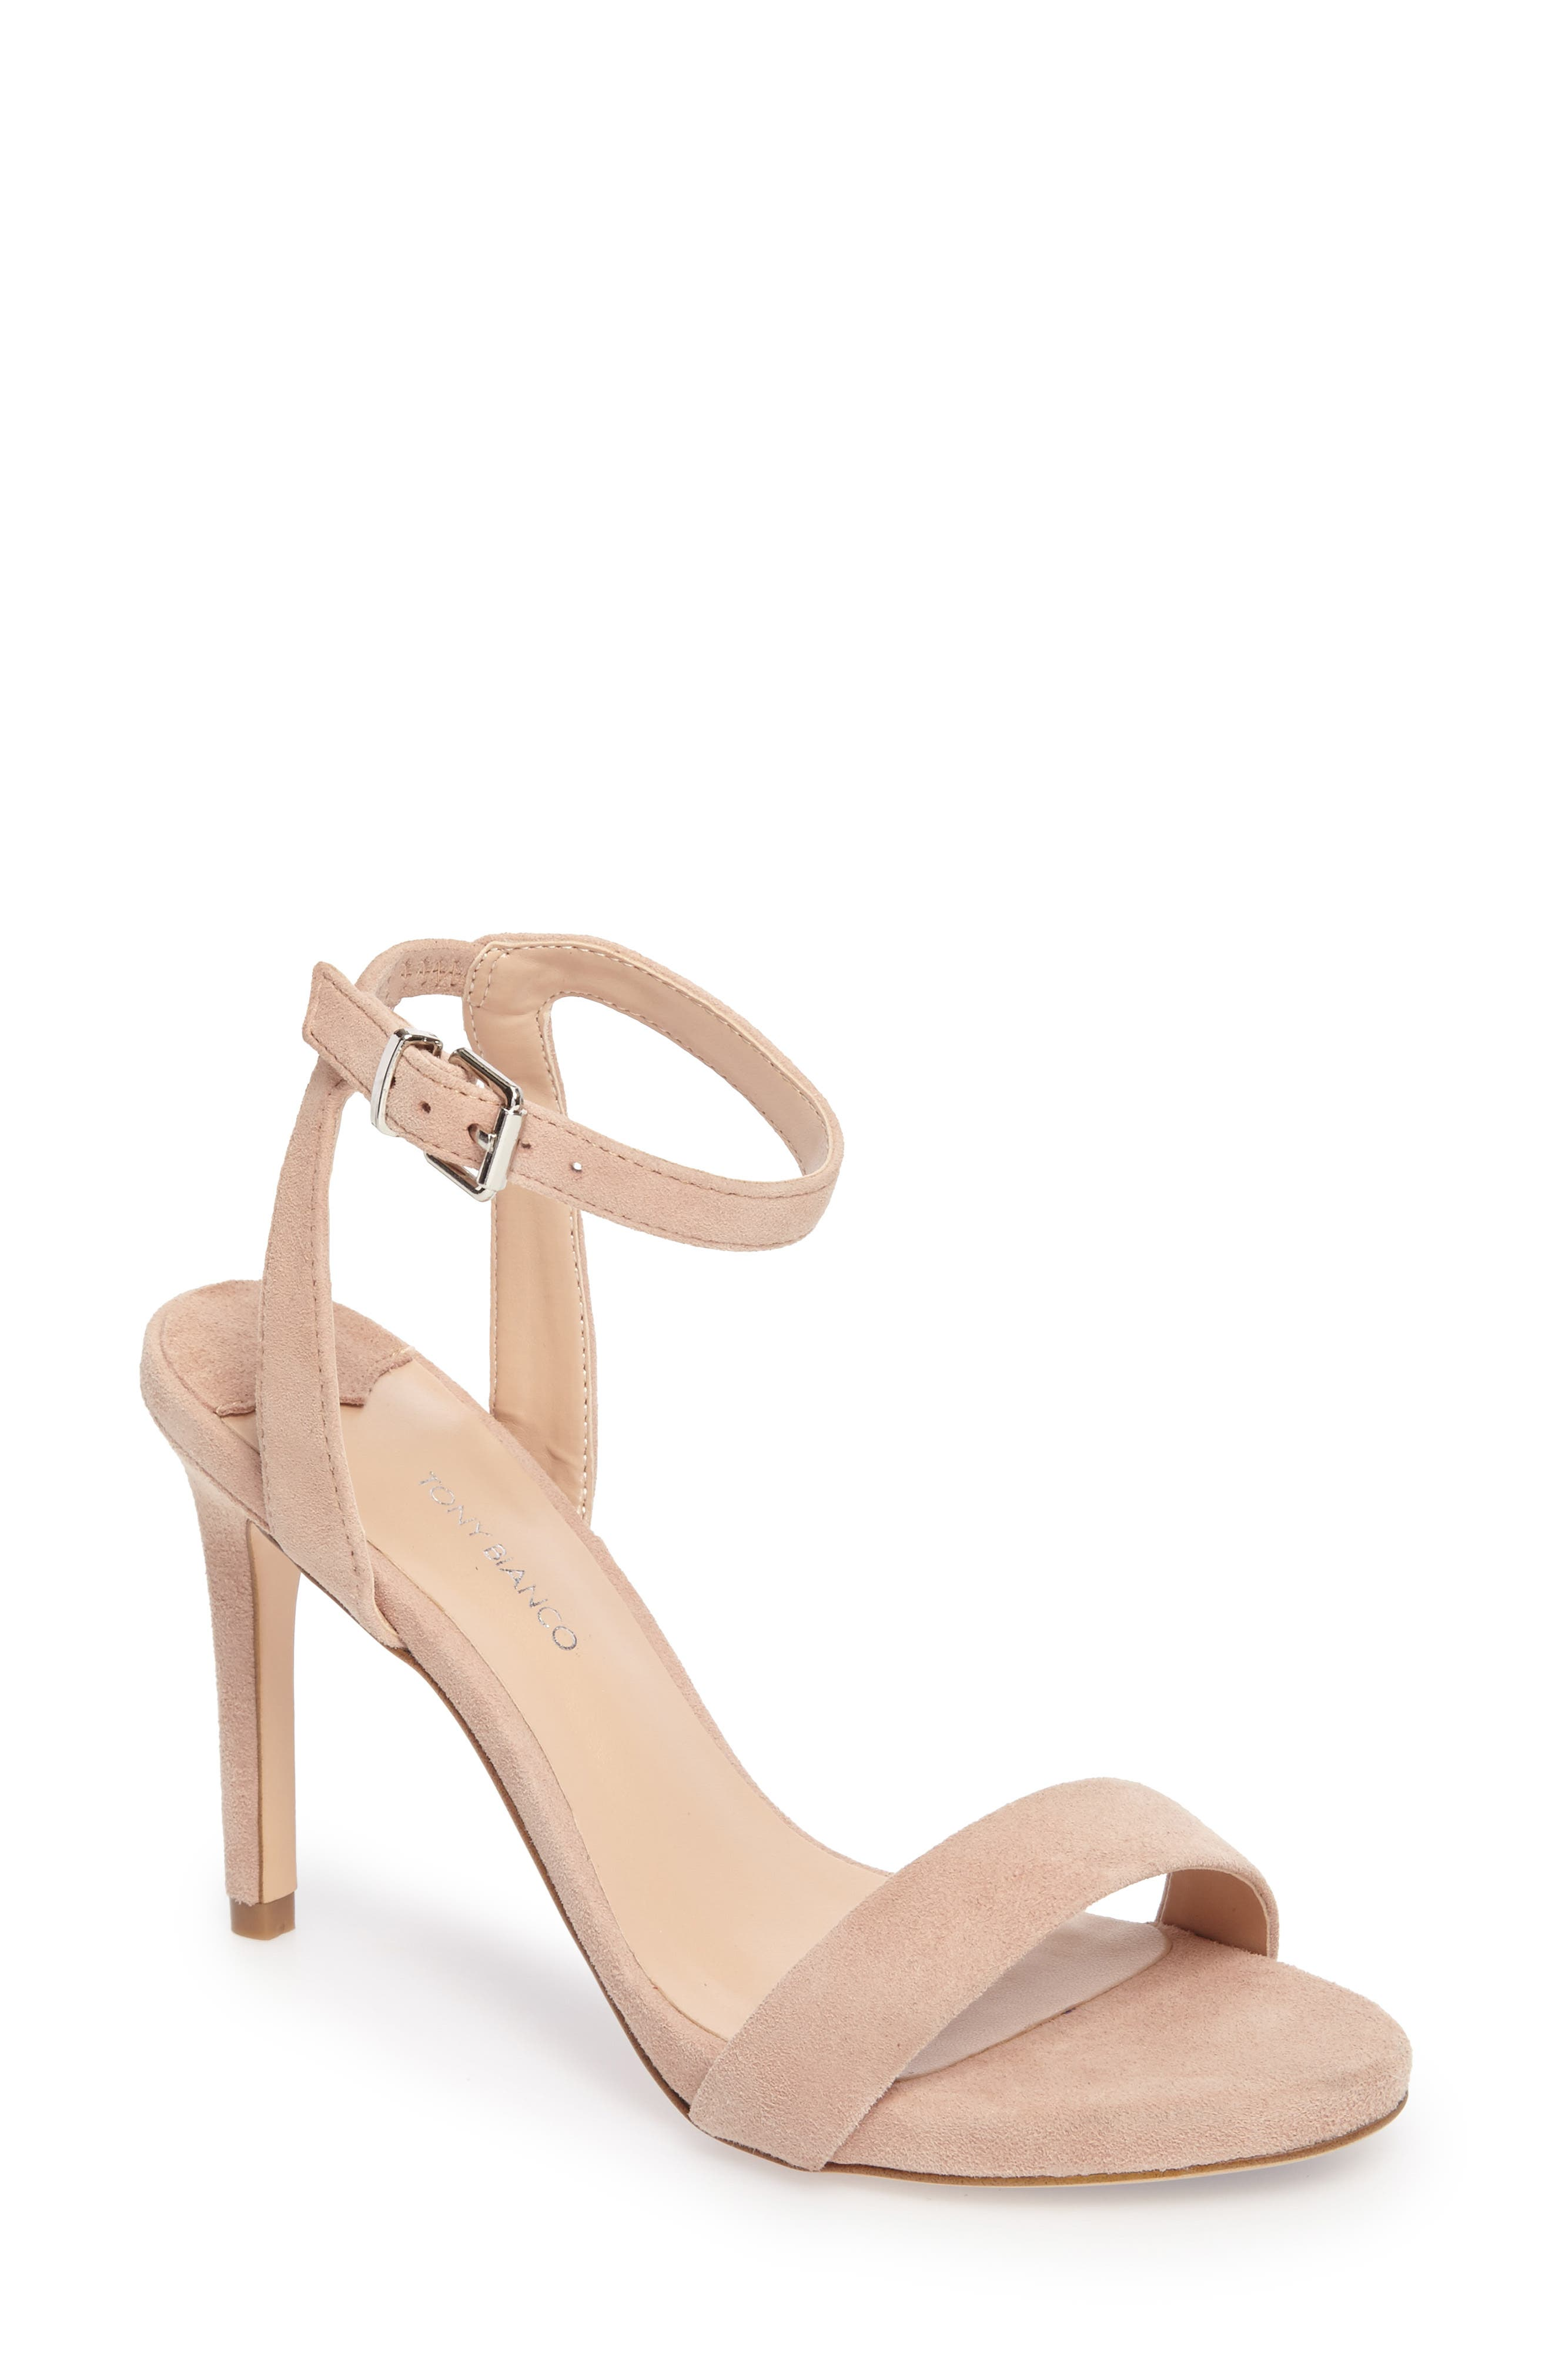 Char Ankle Cuff Sandal,                         Main,                         color, Blush Suede